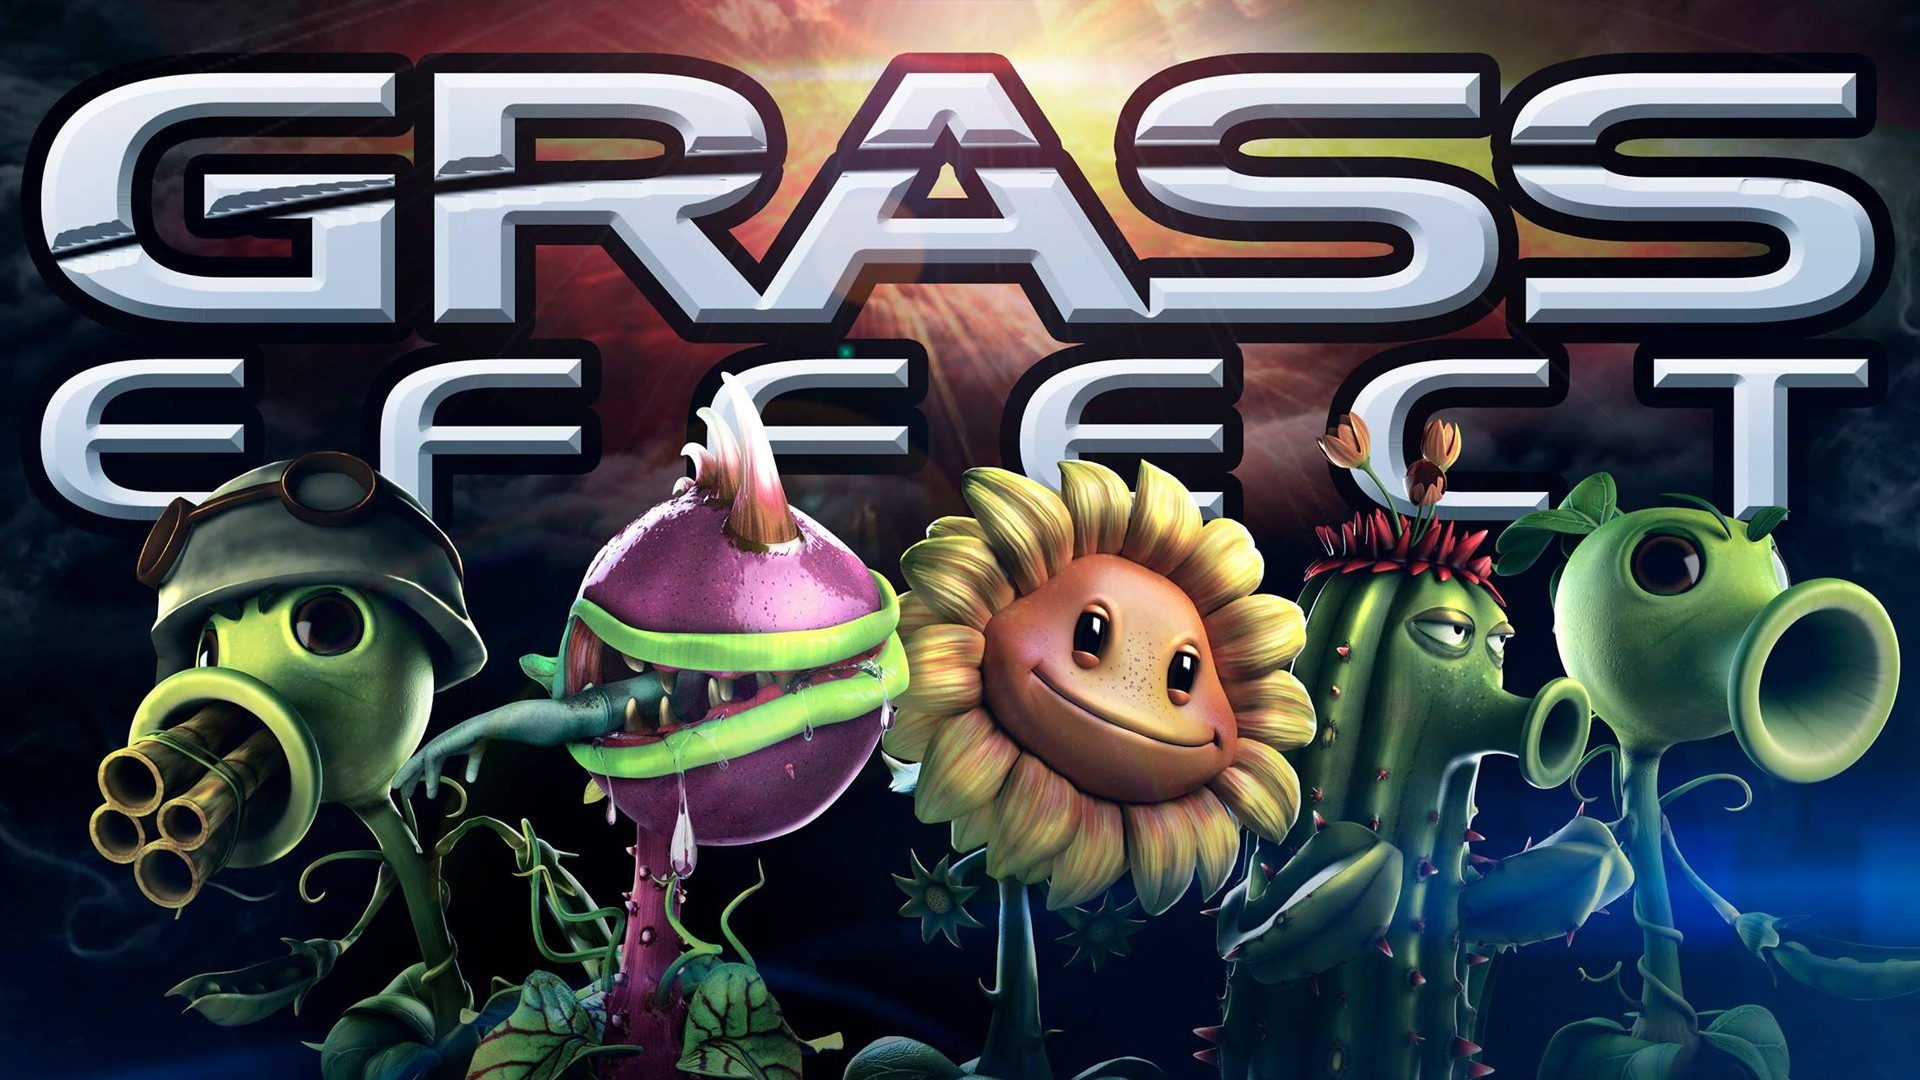 mass effect plants vs zombies wallpaper | 1920x1080 | 100632